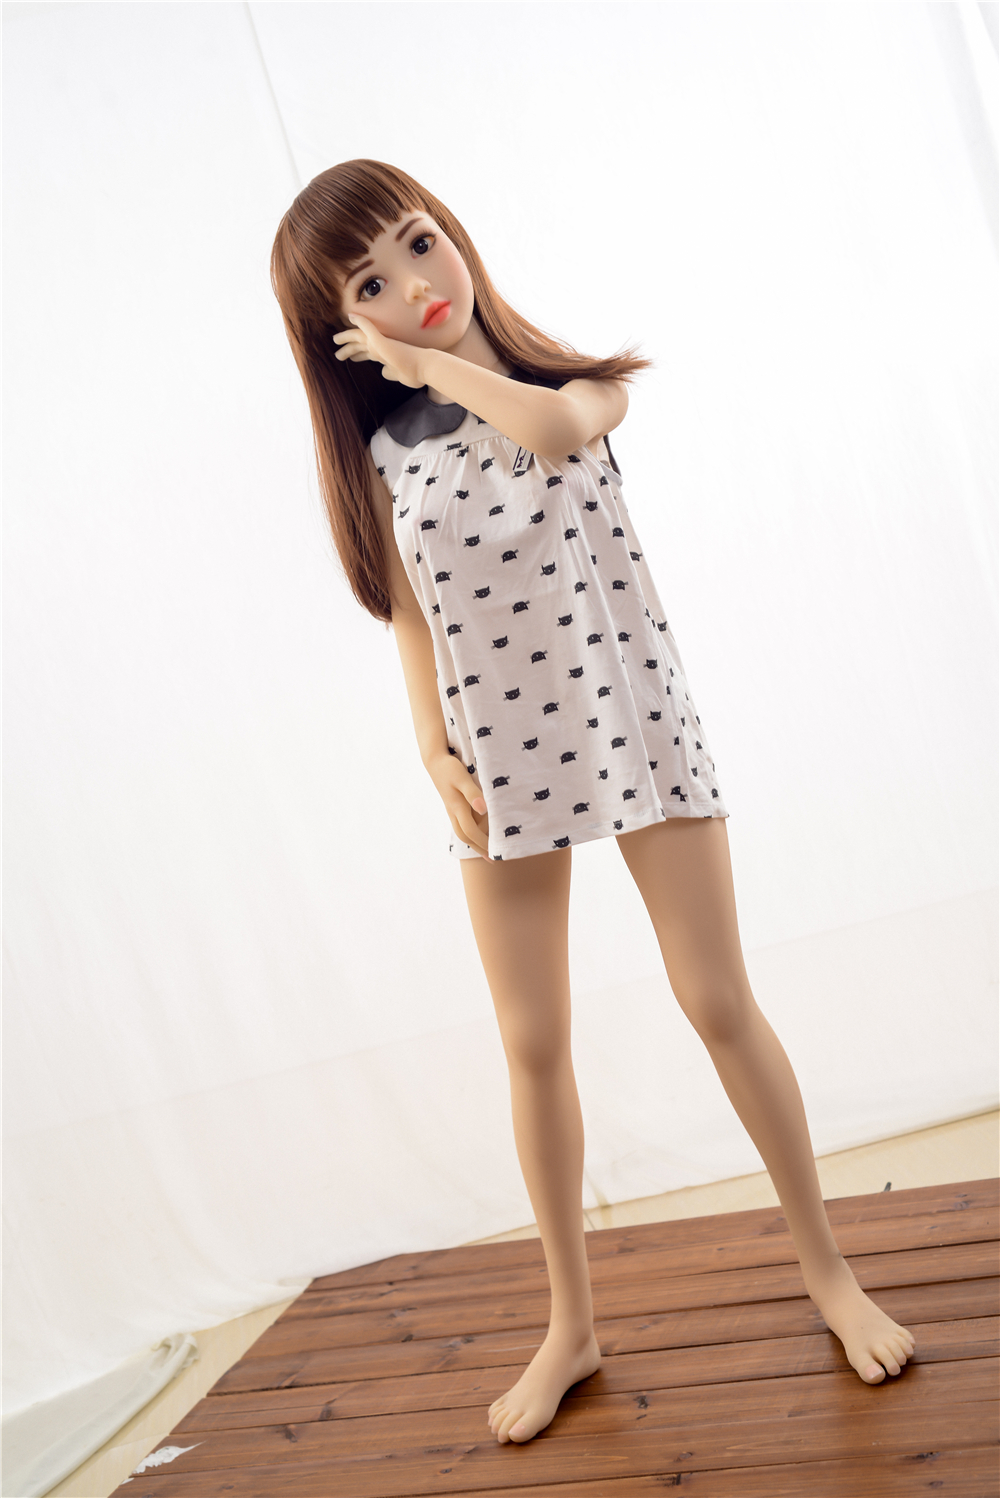 Japan porno girl young sex doll dorpshipping - Techove Doll